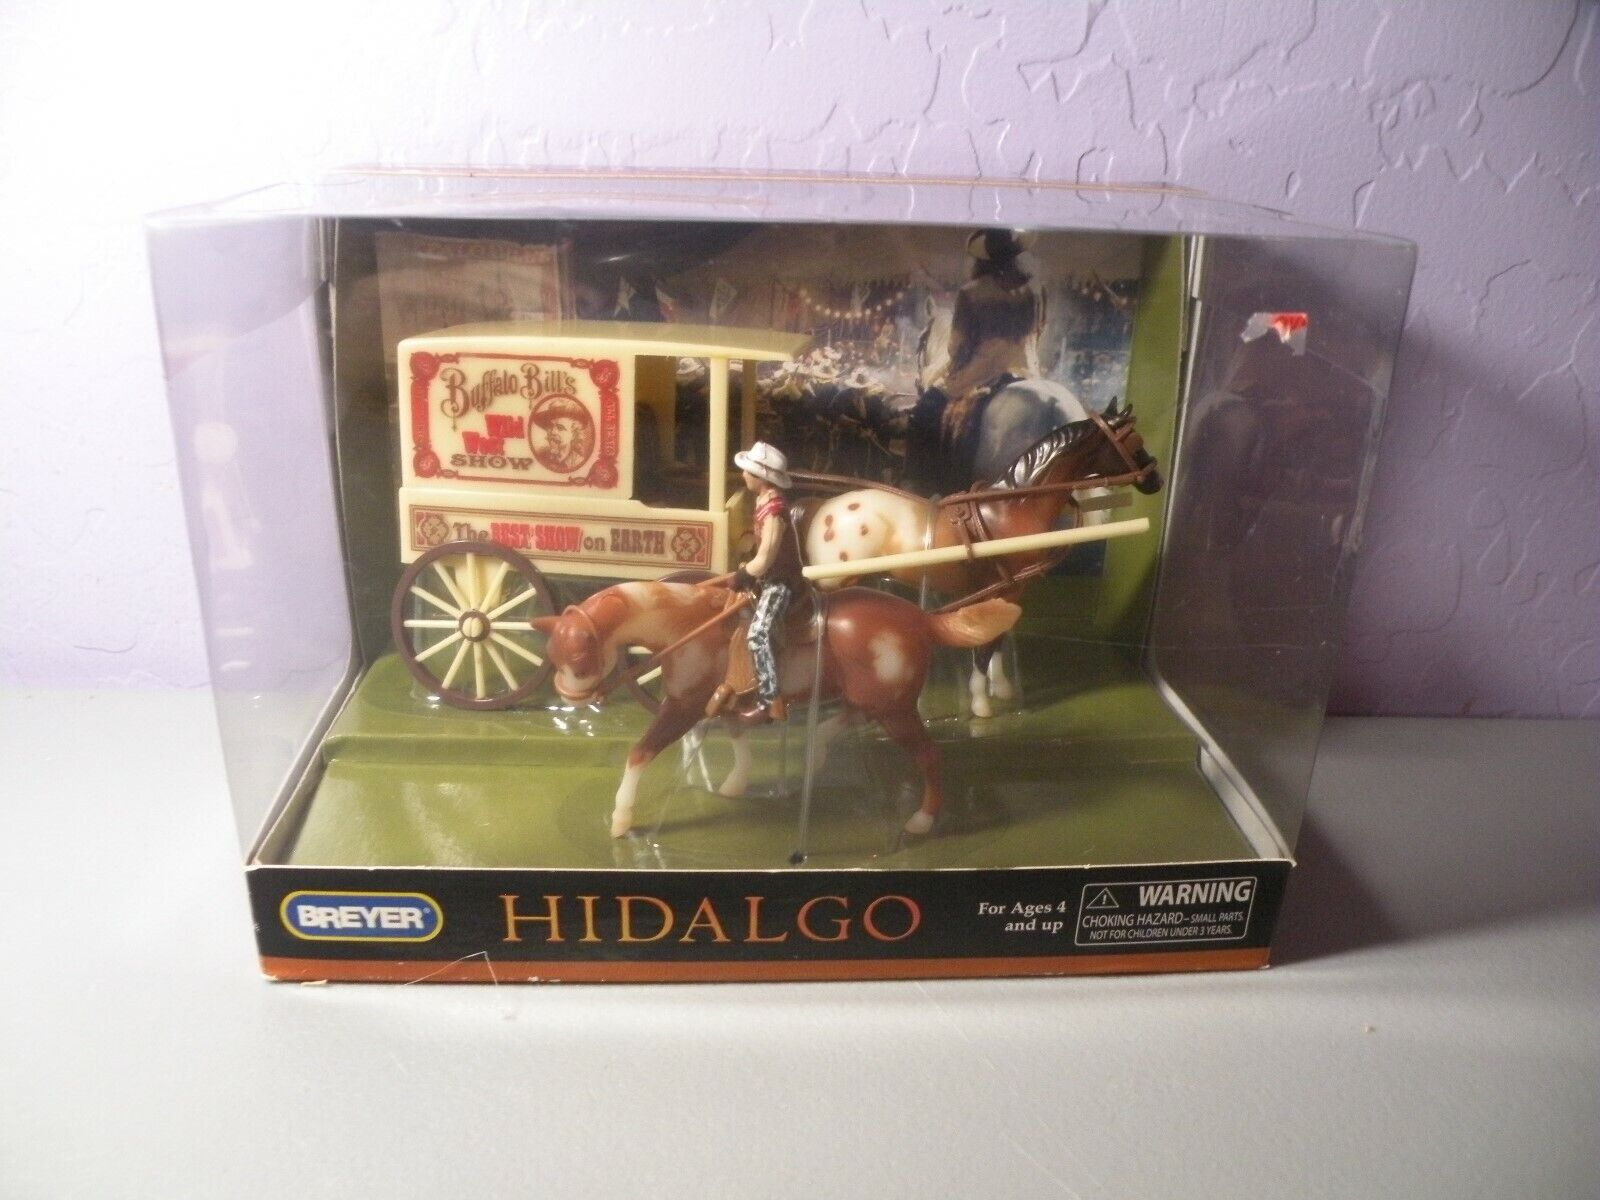 Breyer Stablemates Hidalgo Buffalo Bill Show Play Set NIB